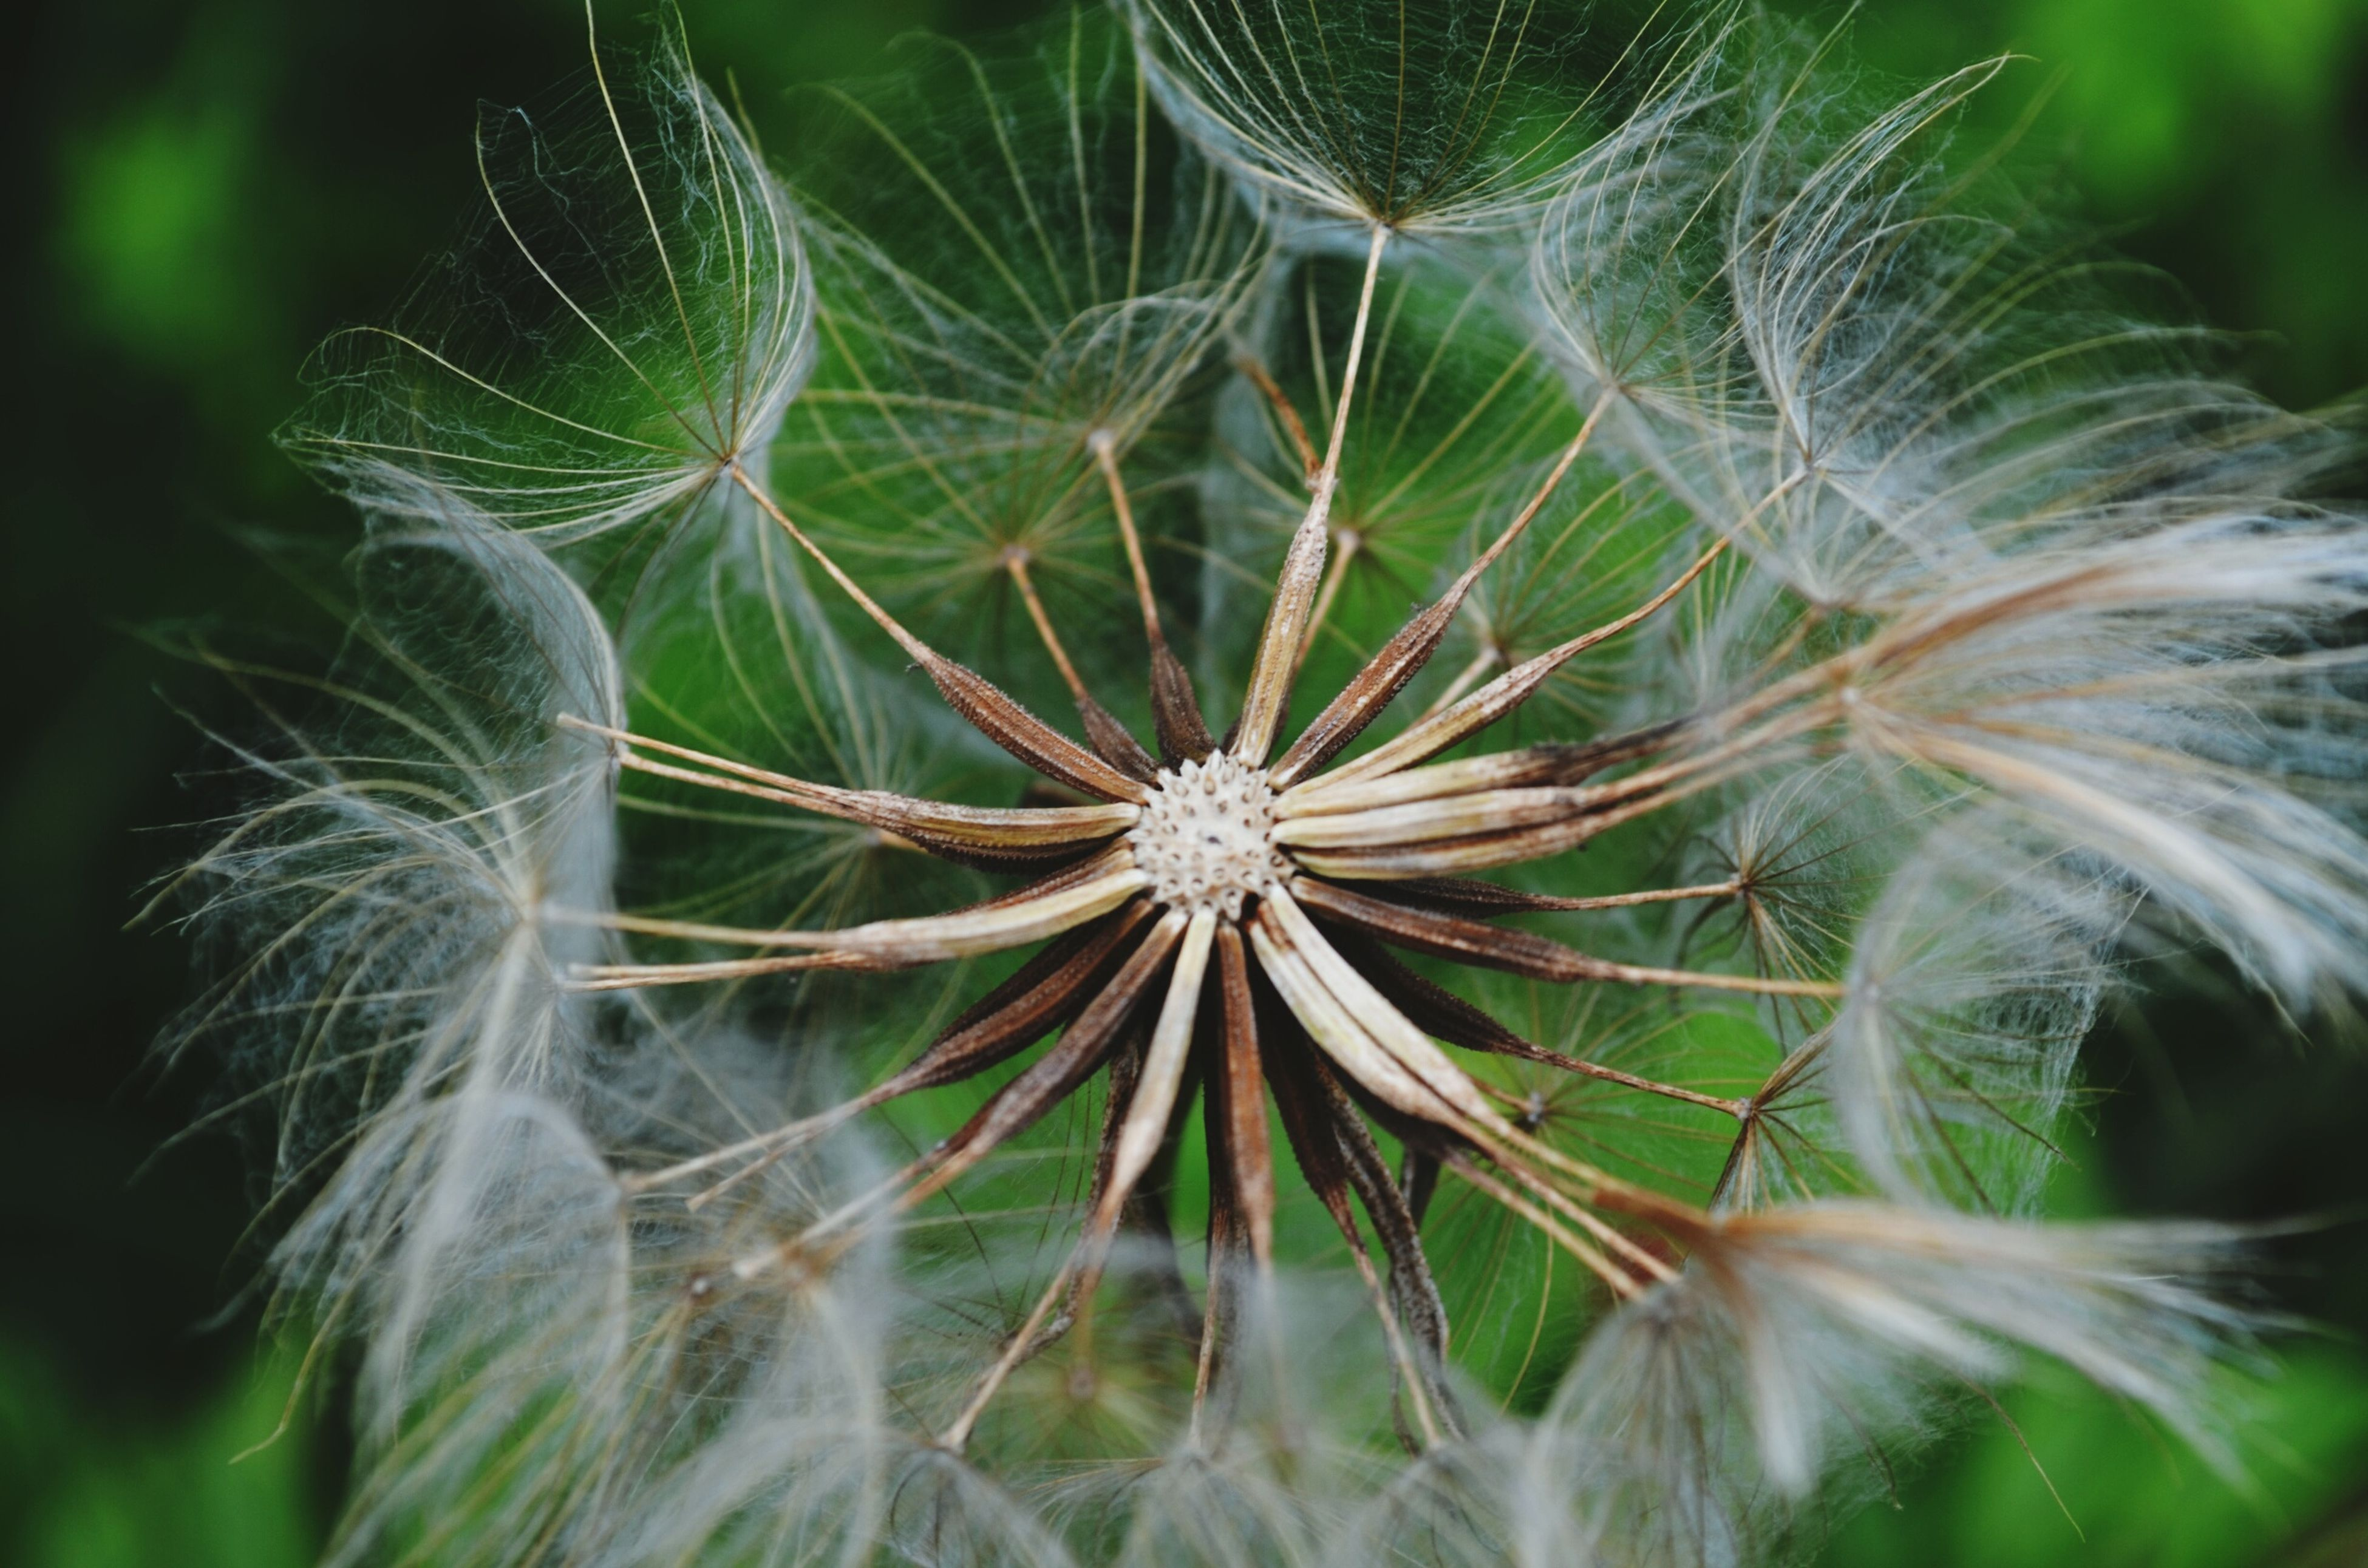 growth, fragility, close-up, nature, plant, beauty in nature, freshness, focus on foreground, dandelion, outdoors, day, no people, flower, natural pattern, dandelion seed, single flower, leaf, softness, green color, low angle view